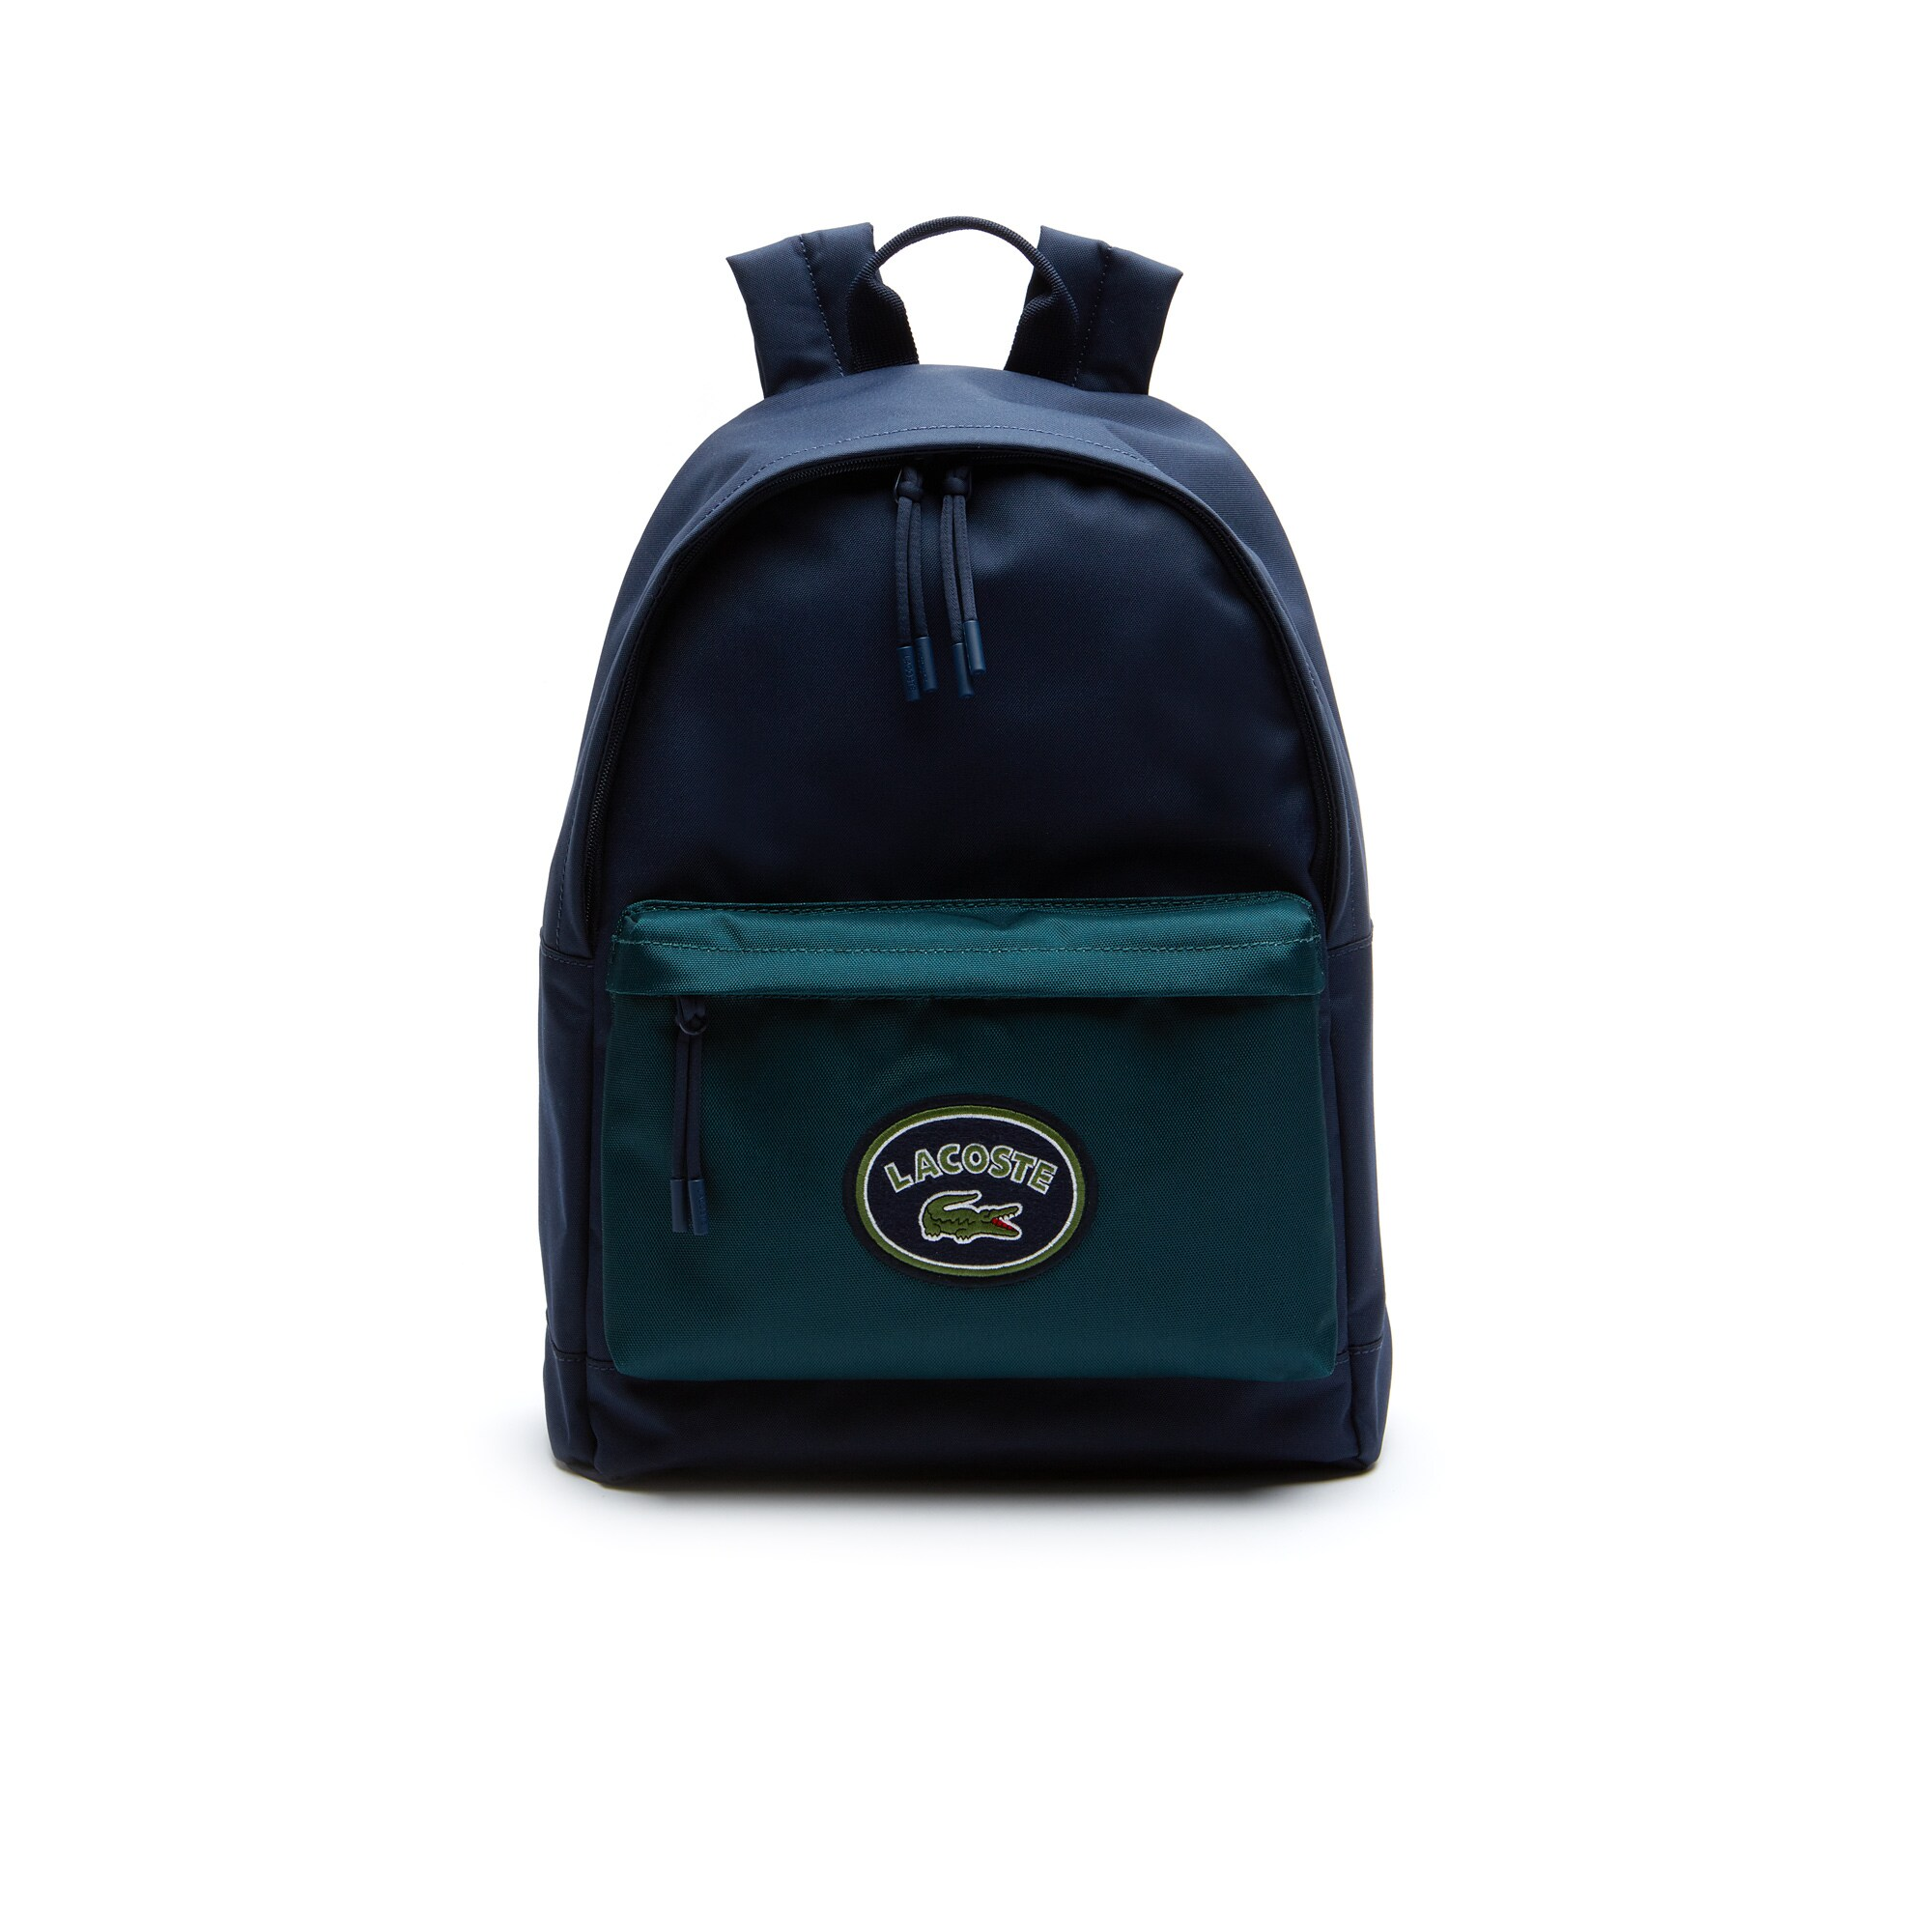 Homme Lacoste Maroquinerie Sacoches Et Sacs PqwY6Y